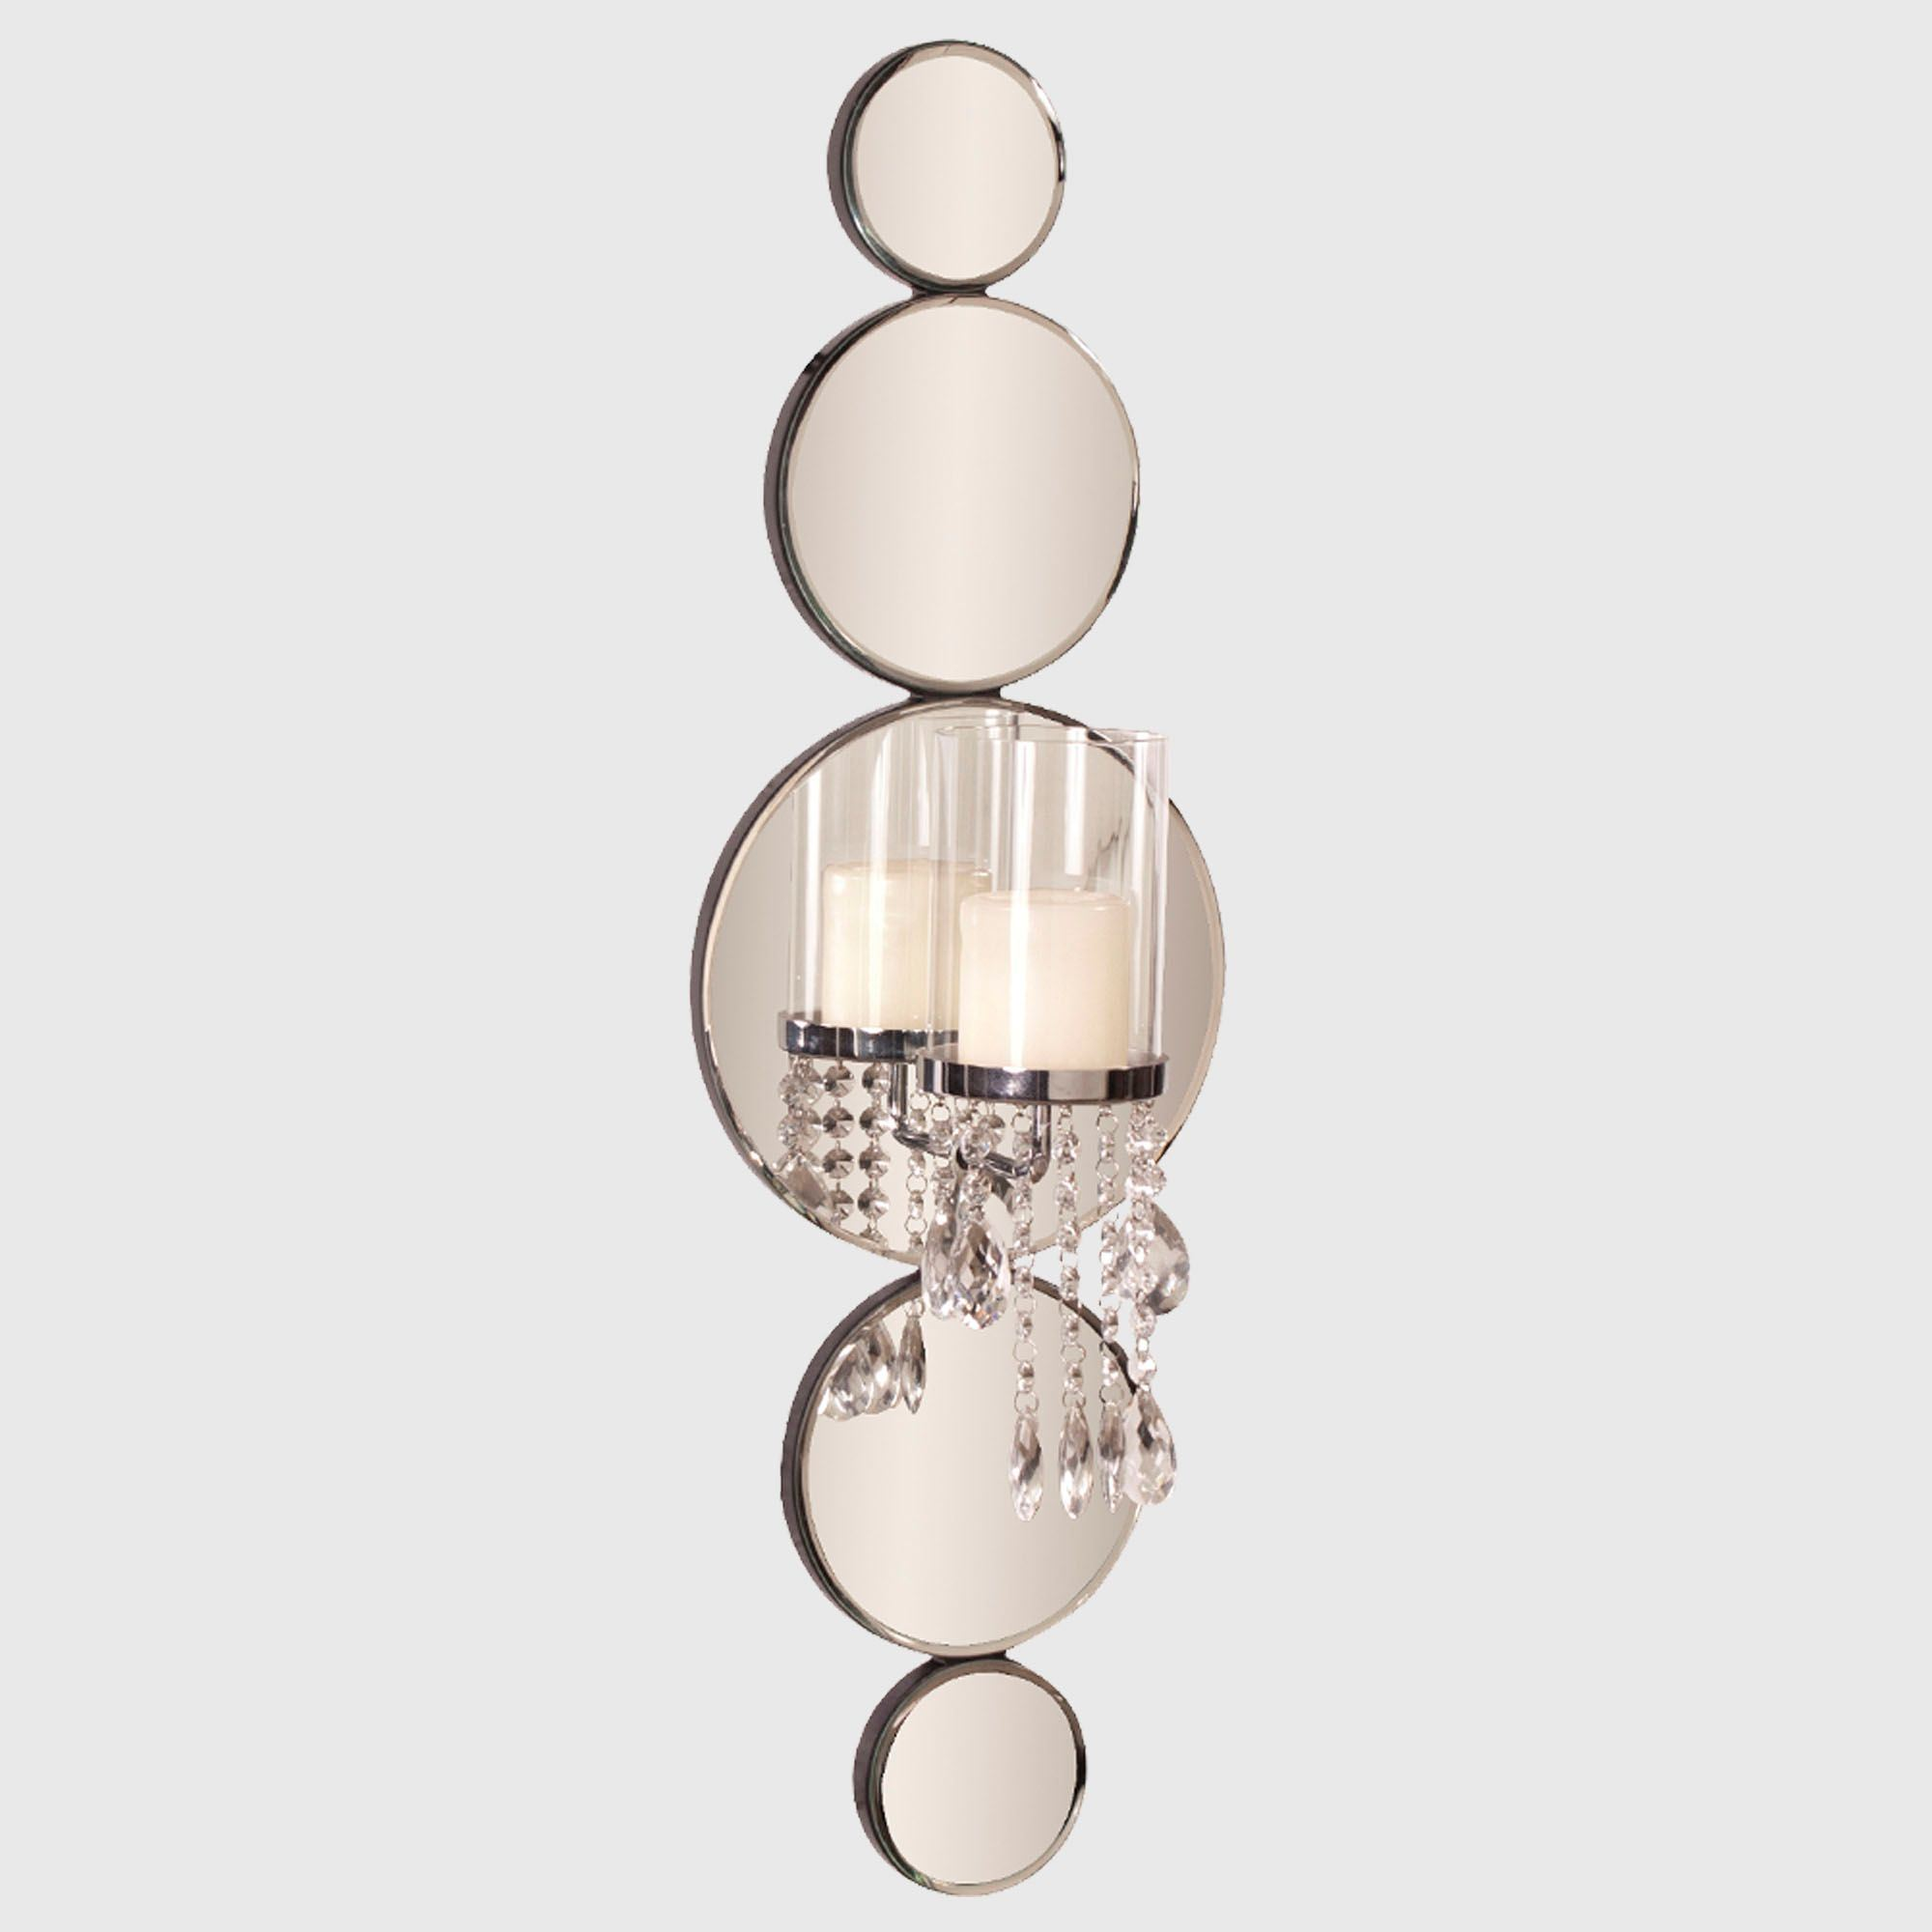 Michele mirrored wall sconce with crystals